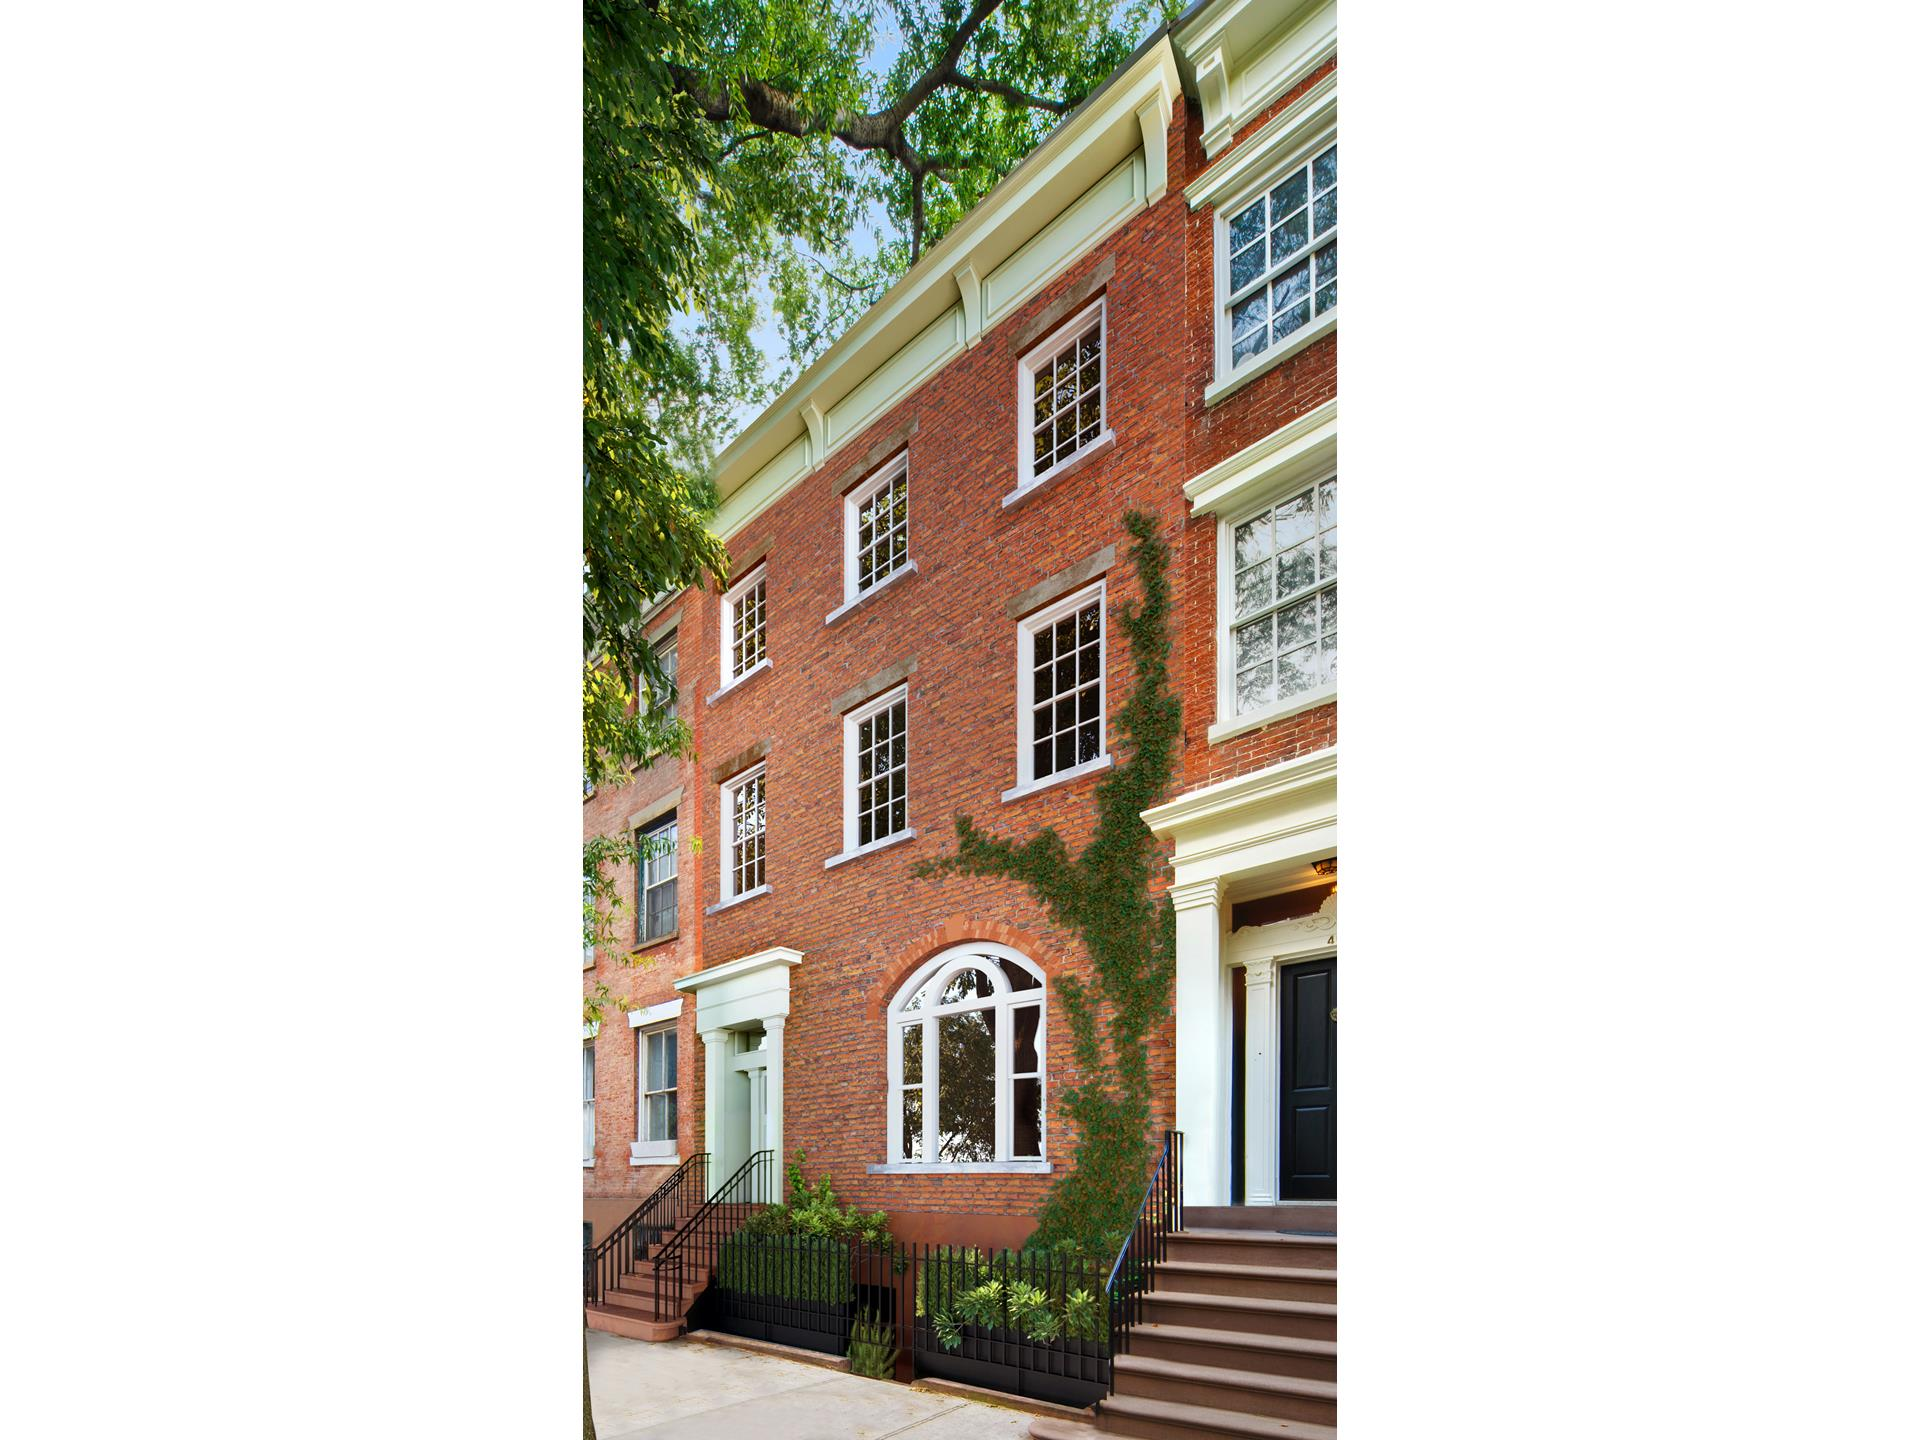 """Twin Houses - Historic Greek Revival Townhouse with 3-Story Private Guest House in the heart of the Gold Coast.    Main House Footprint: 4 Stories at 22Ft X 44Ft  3872SF  Guest House Footprint: 3 Stories at 22Ft X 21Ft  1386SF  Extension for Galleries: 2 Stories at 8Ft X 28Ft  448SF    """"The row of Greek Revival dwellings on the south side of West 11th Street between Fifth and Sixth Avenues is one of the finest early 19th Century Streetscapes in the area""""Charles Lockwood, """"Bricks and Brownstones"""" - Rizzolli Books    Rarely does a property of this distinction and unique footprint come to market. Here is the opportunity to create a home of extraordinary proportions incorporating two distinct buildings situated on the most sought-after street in Greenwich Village. A classic   Greek Revival townhouse with a separate three-story guest house. Both buildings are 22 feet wide on a 94-foot lot.    The main townhouse is an elegant, well-preserved classic row house on the most desirable block in Greenwich Village, often referred to as the """"Gold Coast"""".  The rear garden and additional guest house are unexpectedly surrounded by lush greenery offering a green   oasis in the center of the Village.  The main historic house is 22' X 44' plus an extension, which provides bathrooms on all four floors. As a Greek revival townhouse, the proportions are graceful and elegant, retaining architectural details of the 19th century   such as high ceilings, fireplaces, parquet floors, original moldings, and pocket doors. Now divided into four apartments, it can easily be converted back to its grand original configuration as a distinguished single-family home.    The property will be delivered vacant.    The main house is connected to the guest house by a two-story gallery creating a """"picturesque secret garden"""" with the ambiance of an inner courtyard in Provence, an urban oasis in the heart of the city. Both the parlor floor and the gallery have French doors   opening out to two separate, sunny b"""